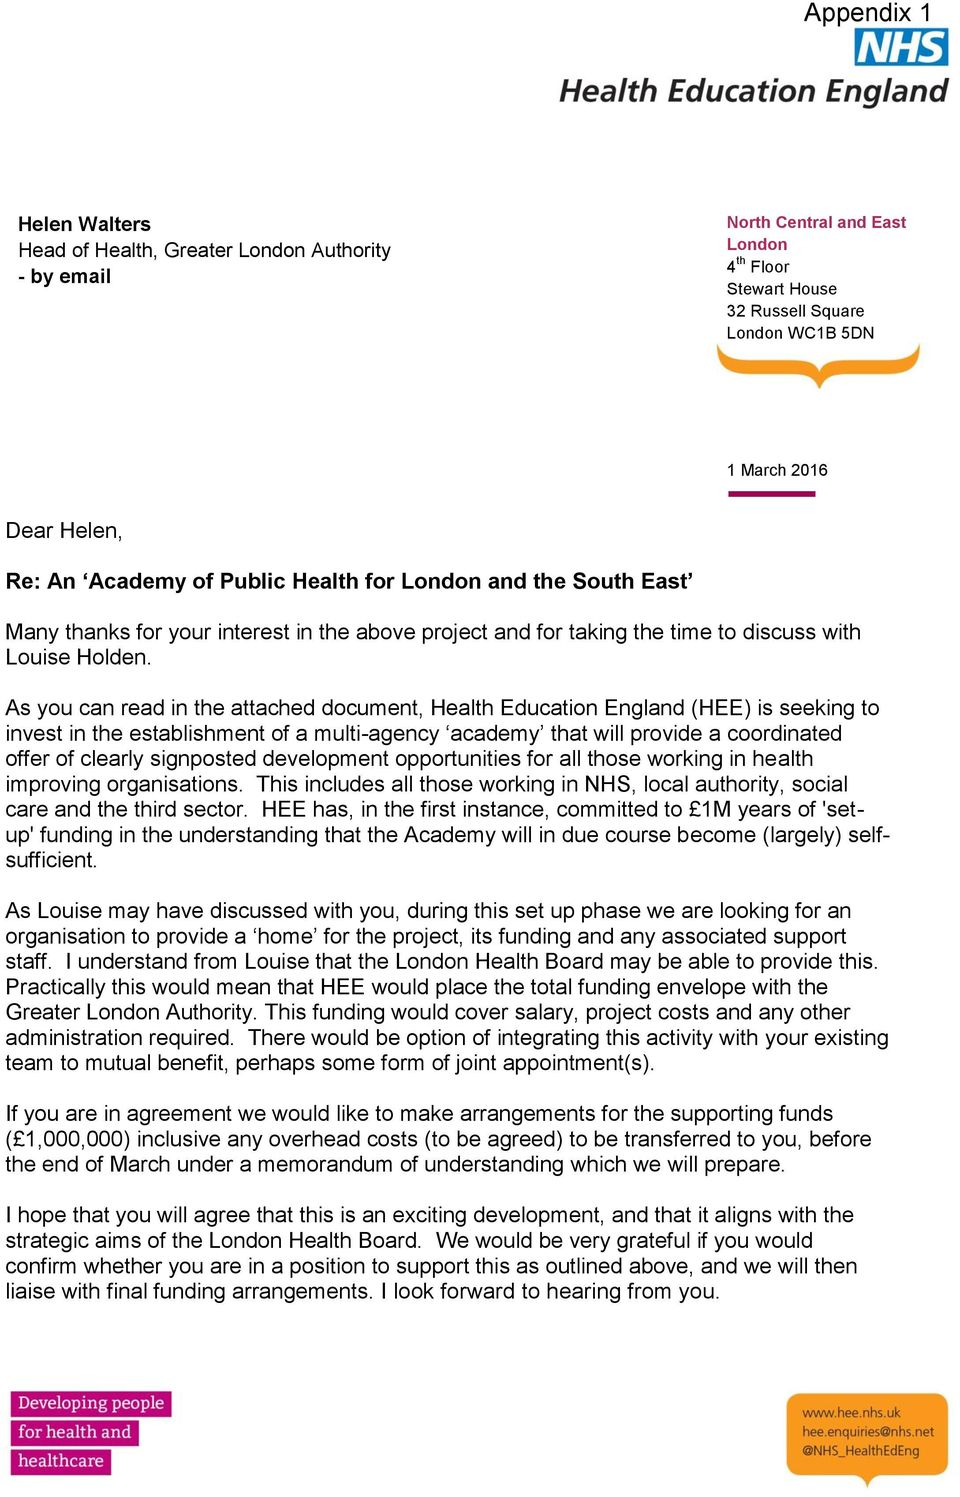 As you can read in the attached document, Health Education England (HEE) is seeking to invest in the establishment of a multi-agency academy that will provide a coordinated offer of clearly